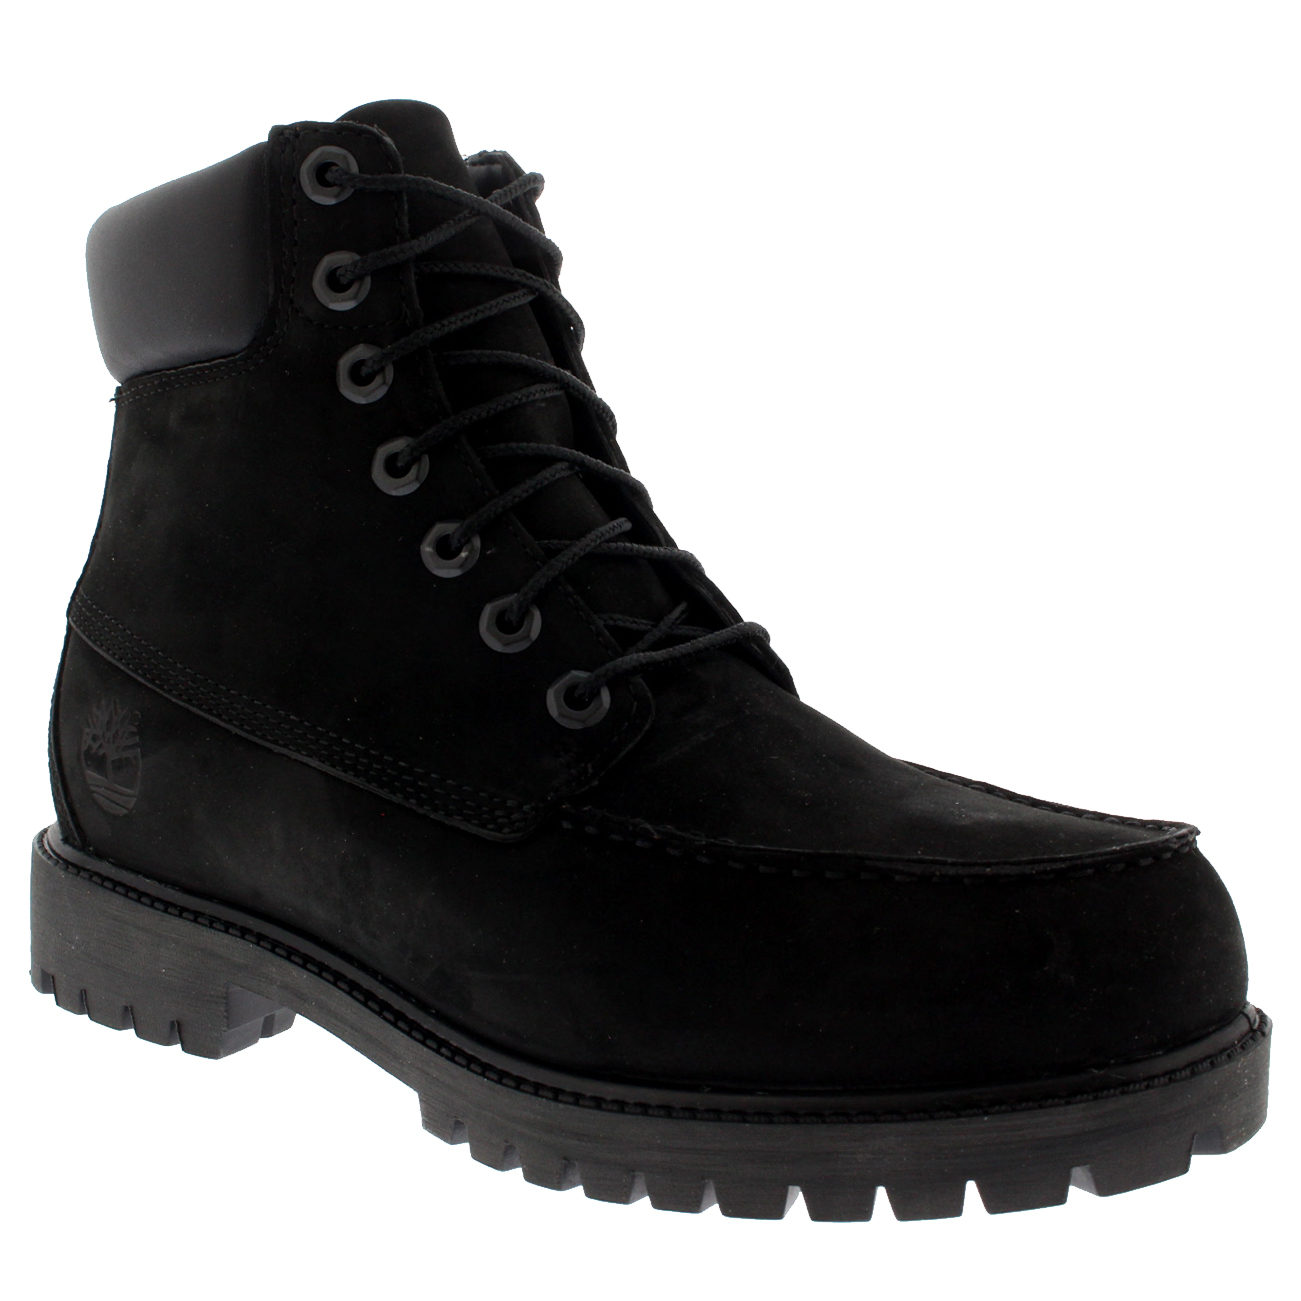 Details about Mens Timberalnd 6 Inch Icon Moc Waterproof Lace Up Winter Ankle Boots All Sizes